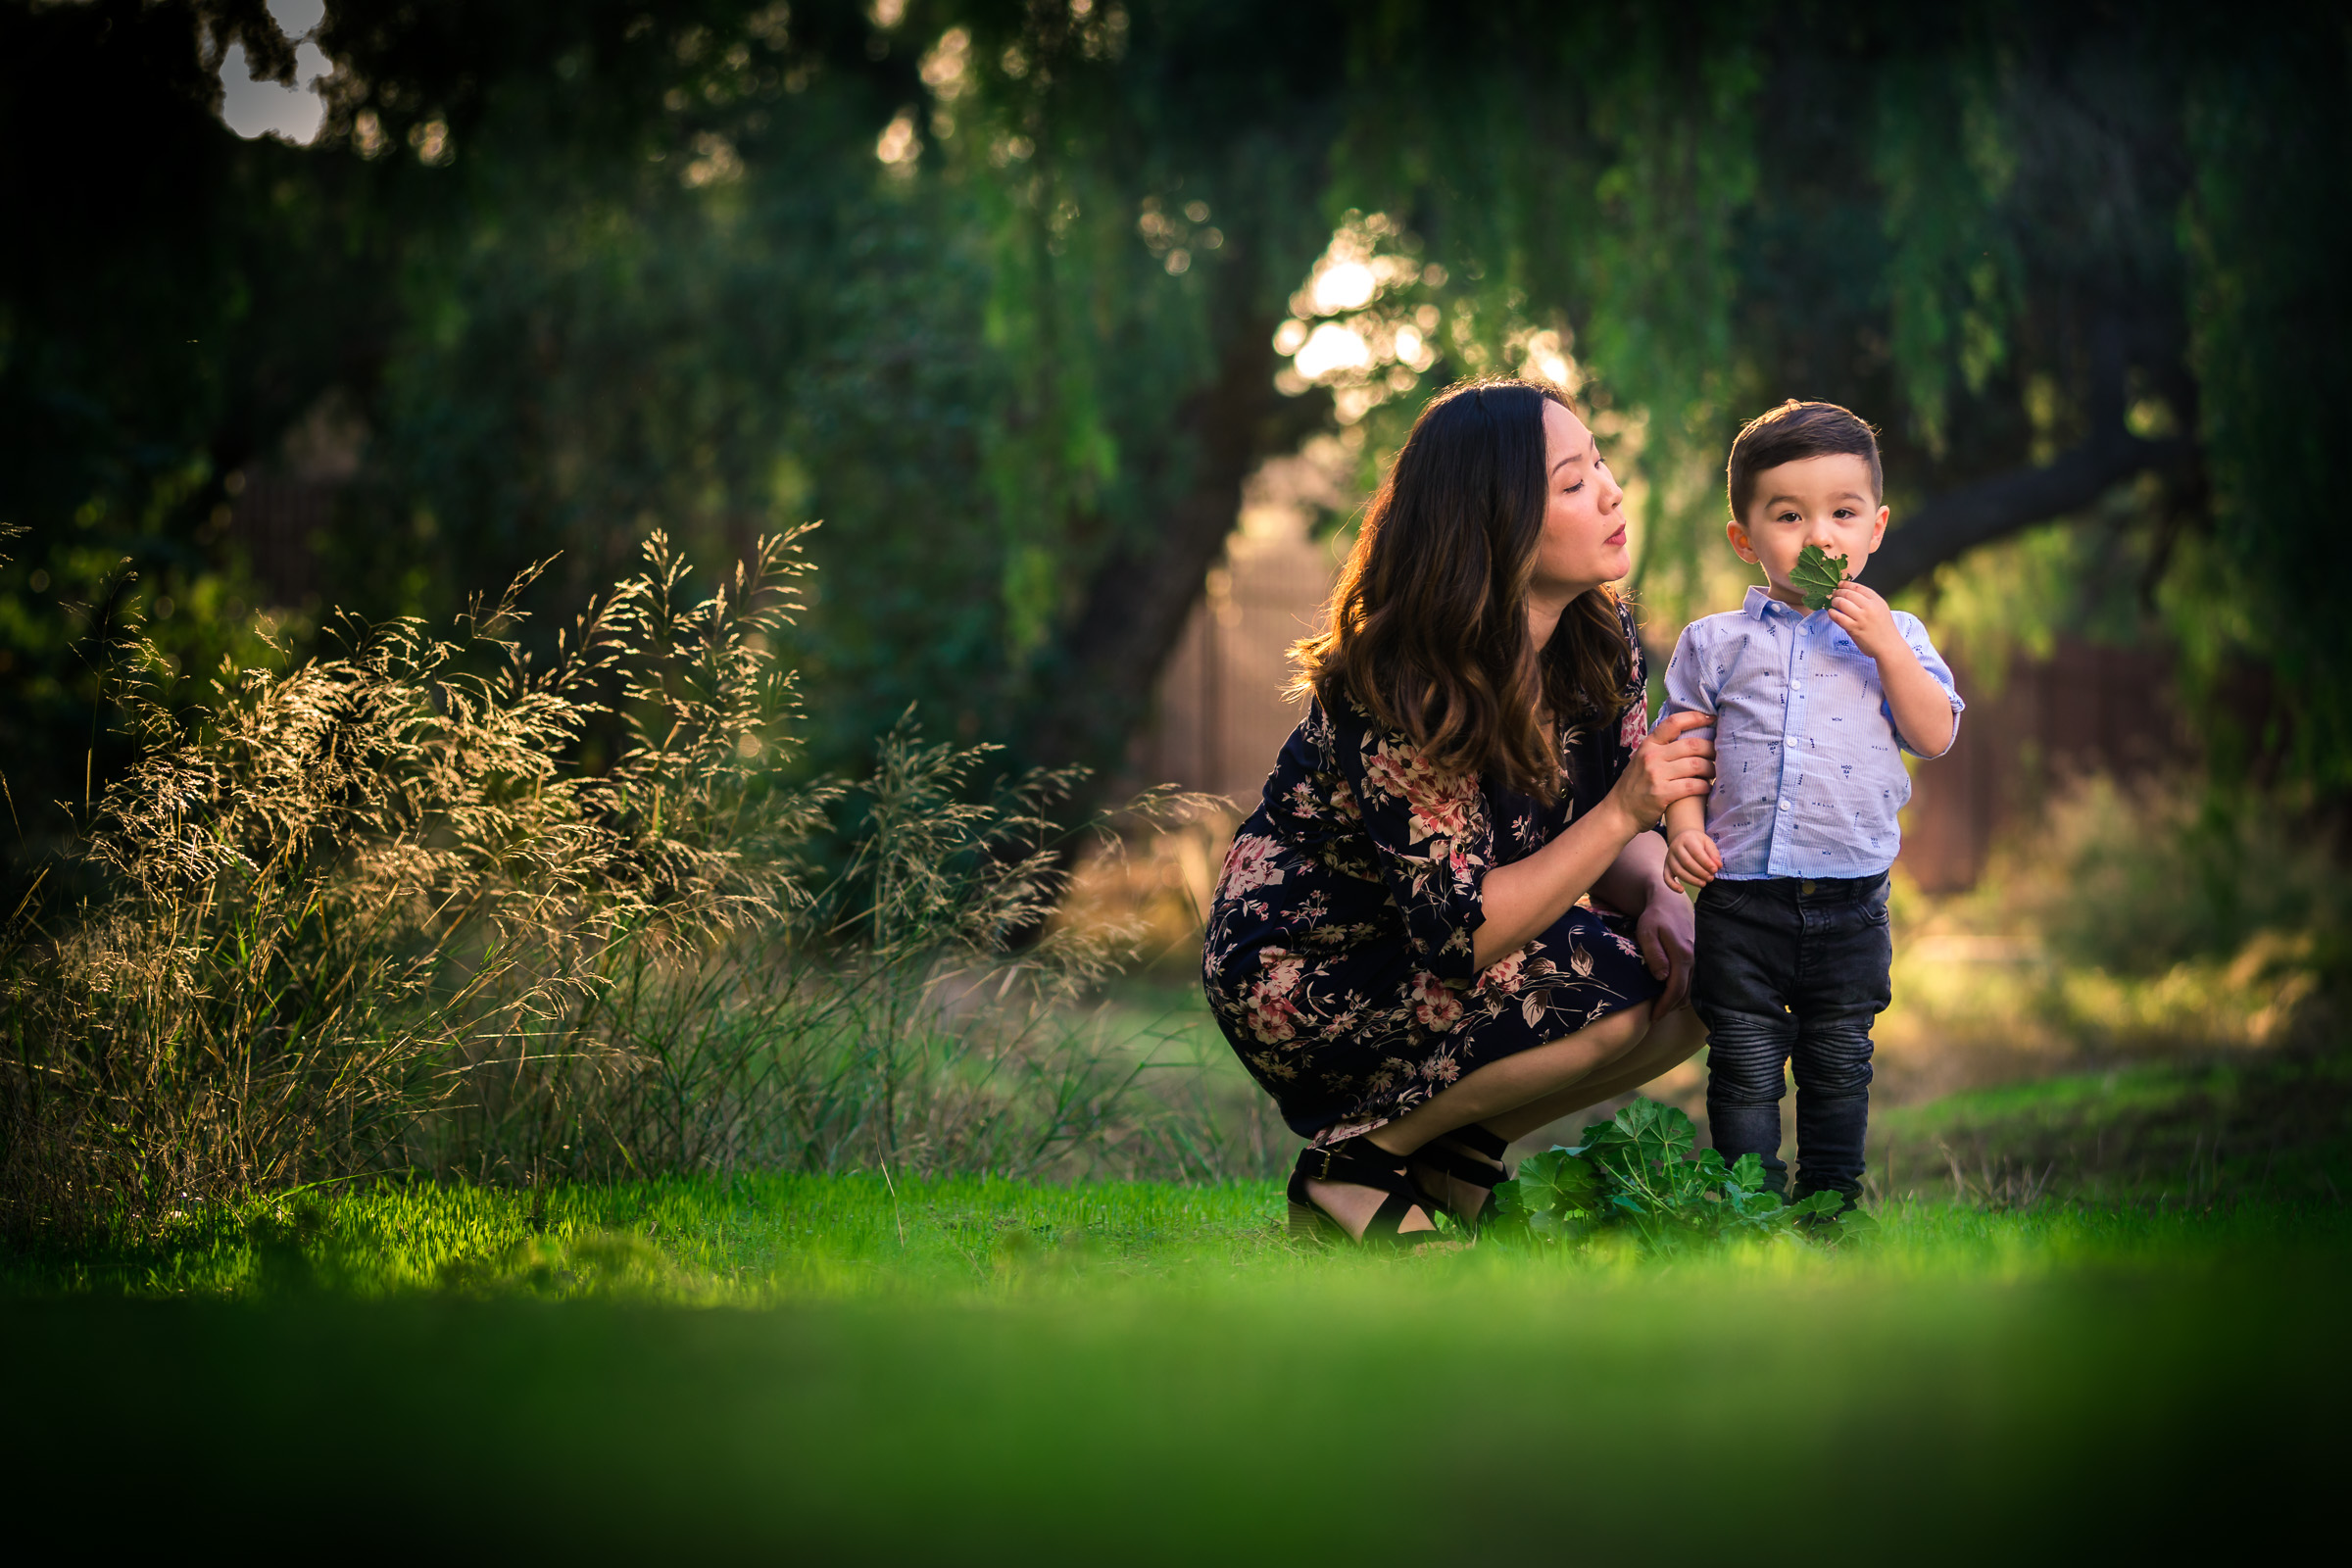 Candid photo of a little boy playing with mother during a Family portrait photo shoot in Fullerton on the Juanita Cooke greenbelt and Trail with vibrant green trees and grass and the golden hour sun